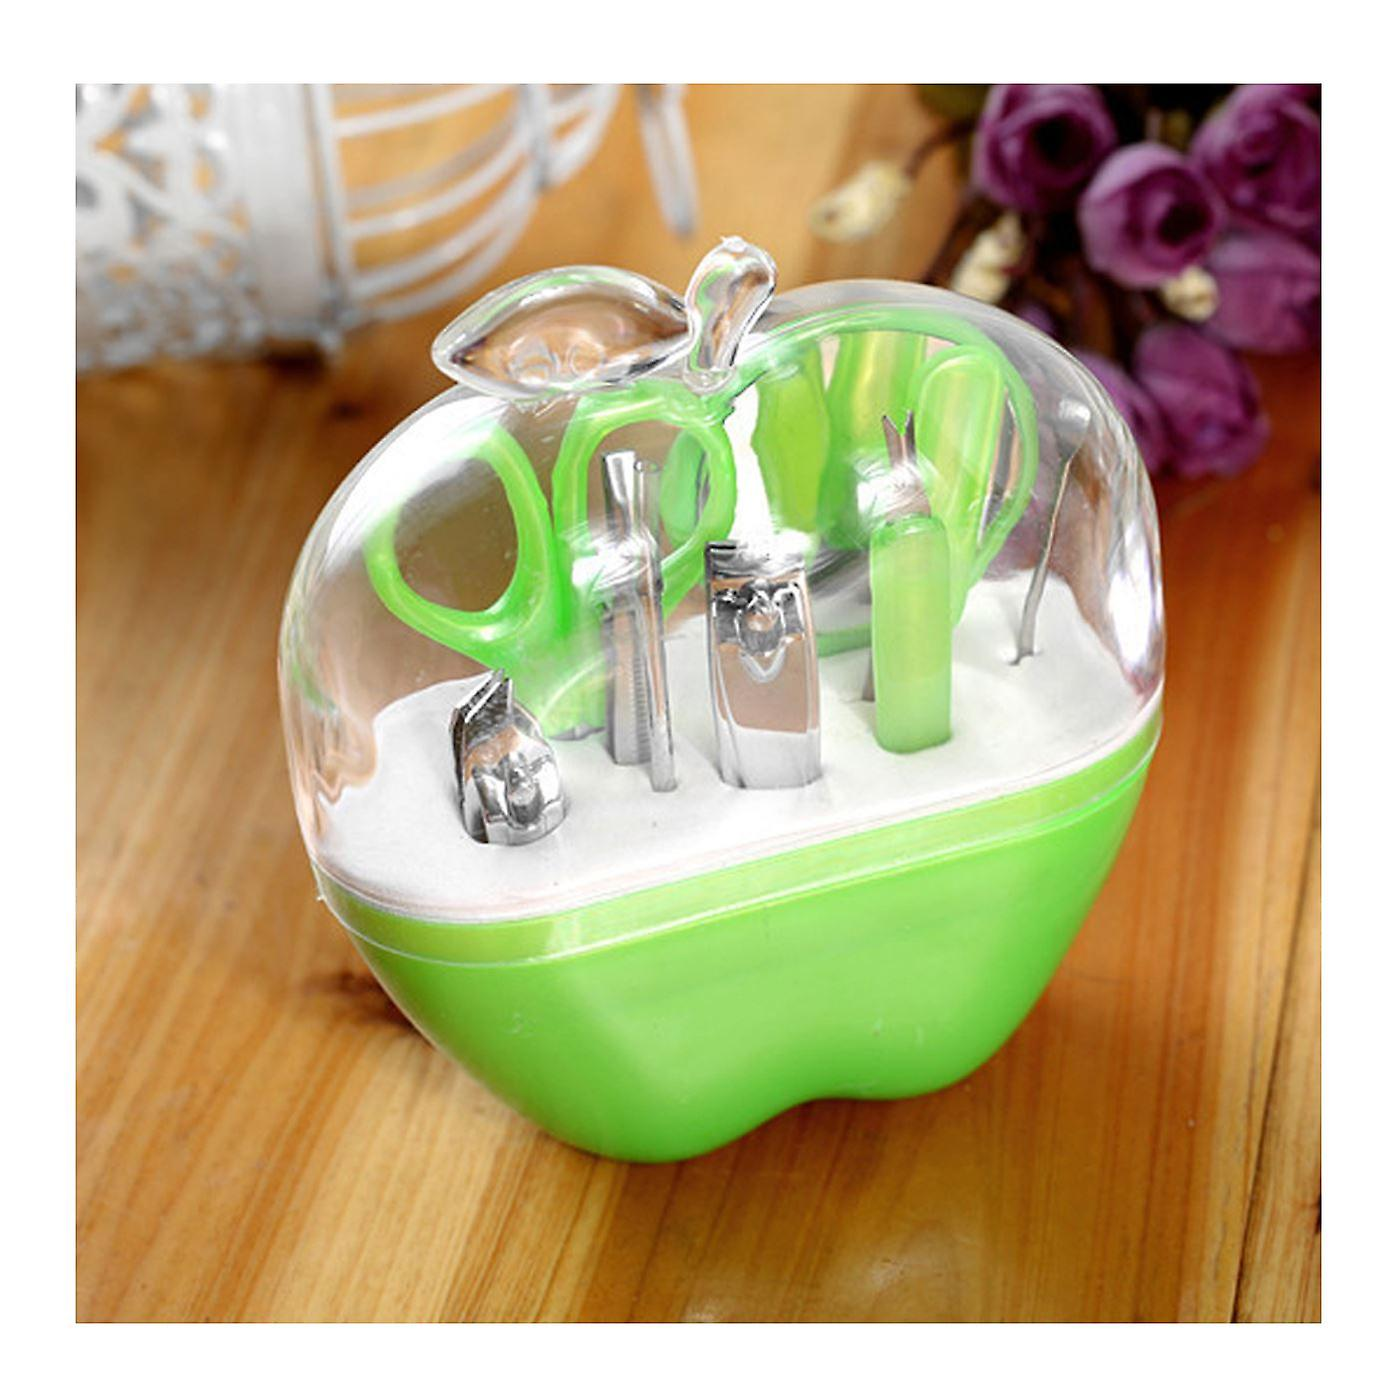 Coupe Verte ongles Ongles Pomme Pédicure Uk Toilettage Coupe Soins Manucure Set Cuticule Nm80nw